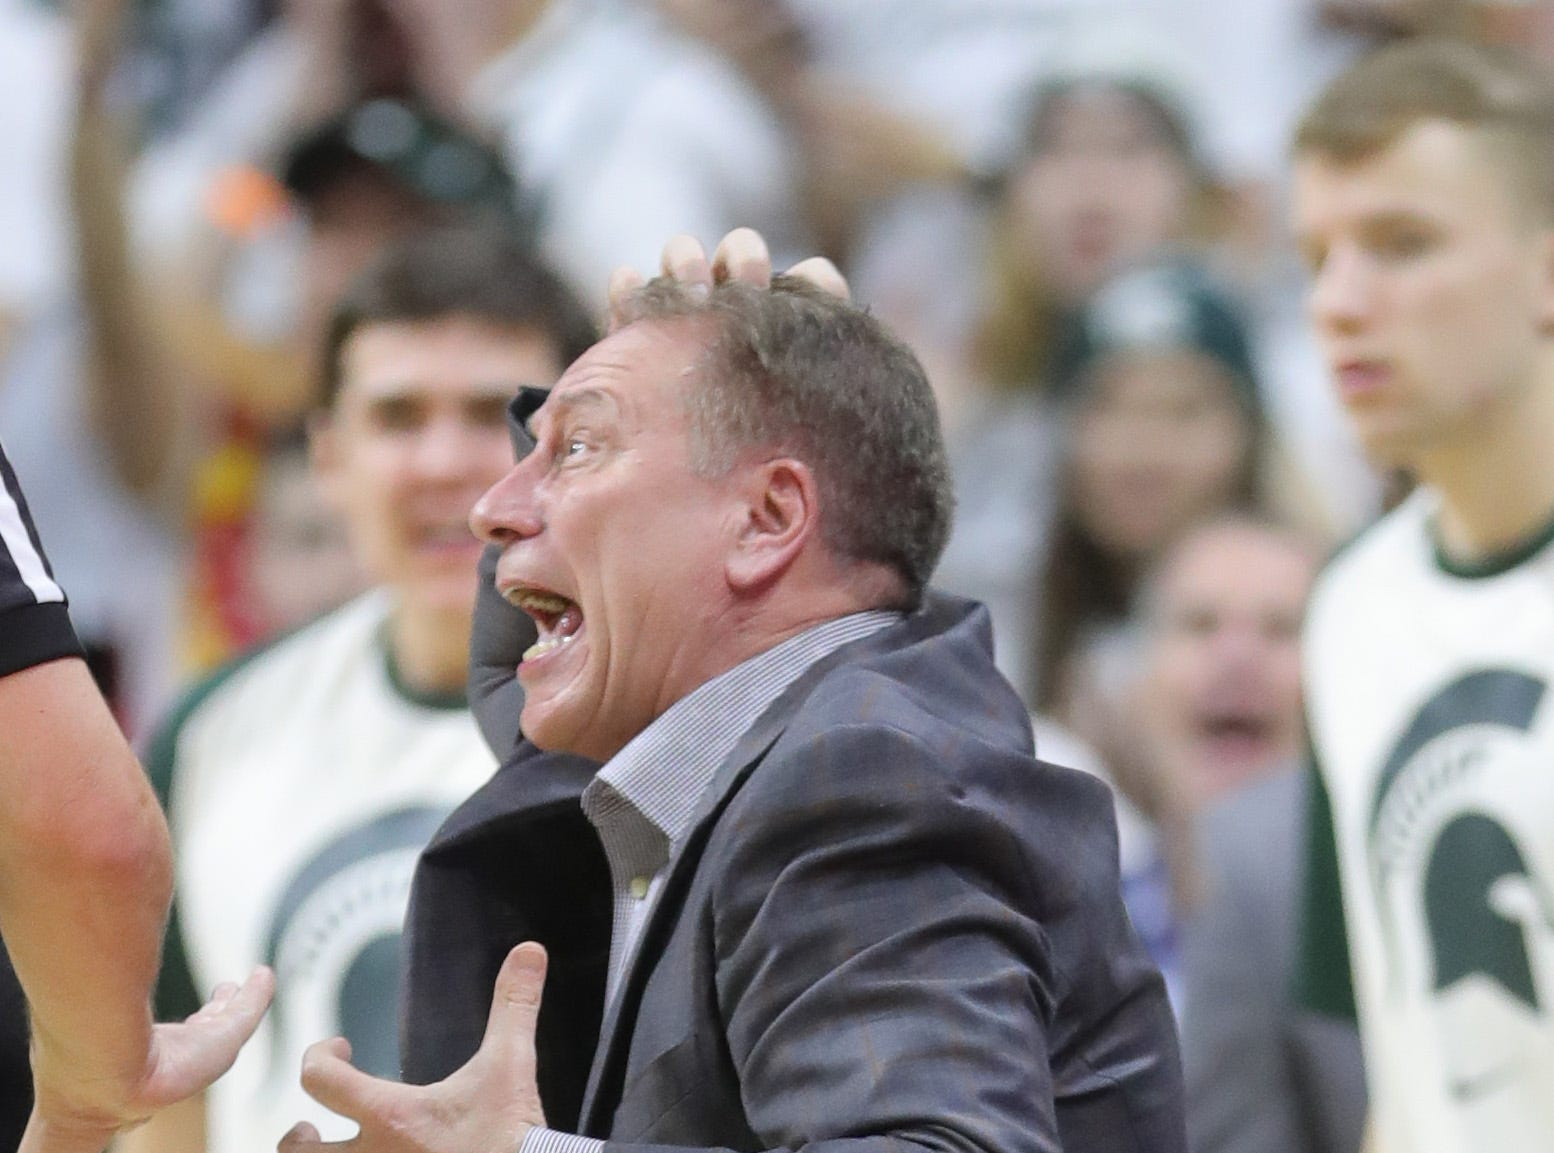 Michigan State head coach Tom Izzo reacts to a call during first half action against Indiana Saturday, Feb. 2, 2019 at the Breslin Center in East Lansing, Mich.